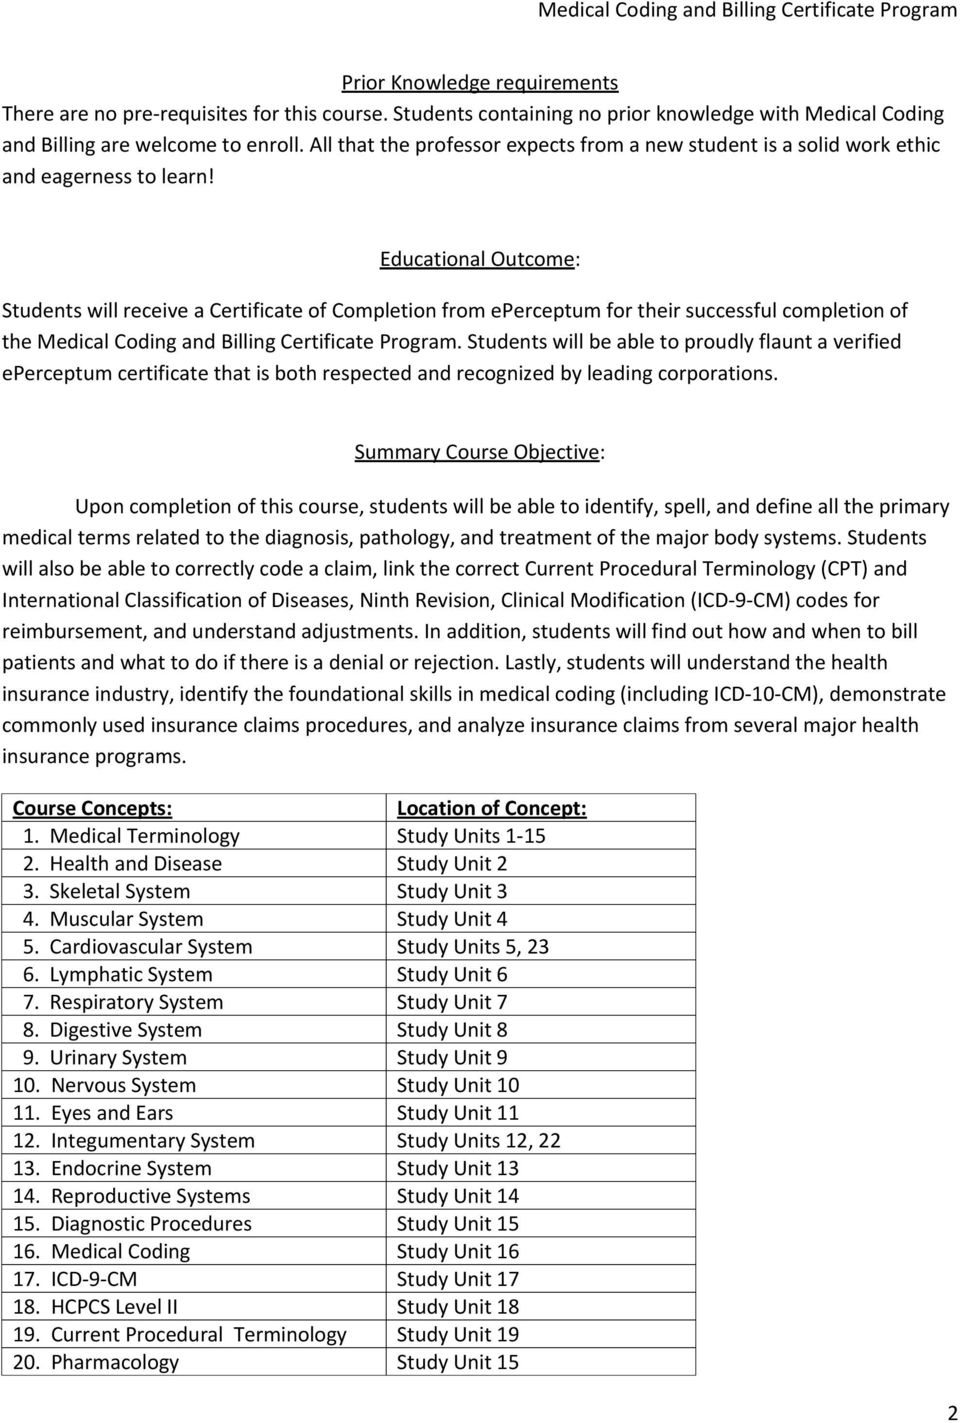 Medical Coding And Billing Specialist Certificate Program Pdf